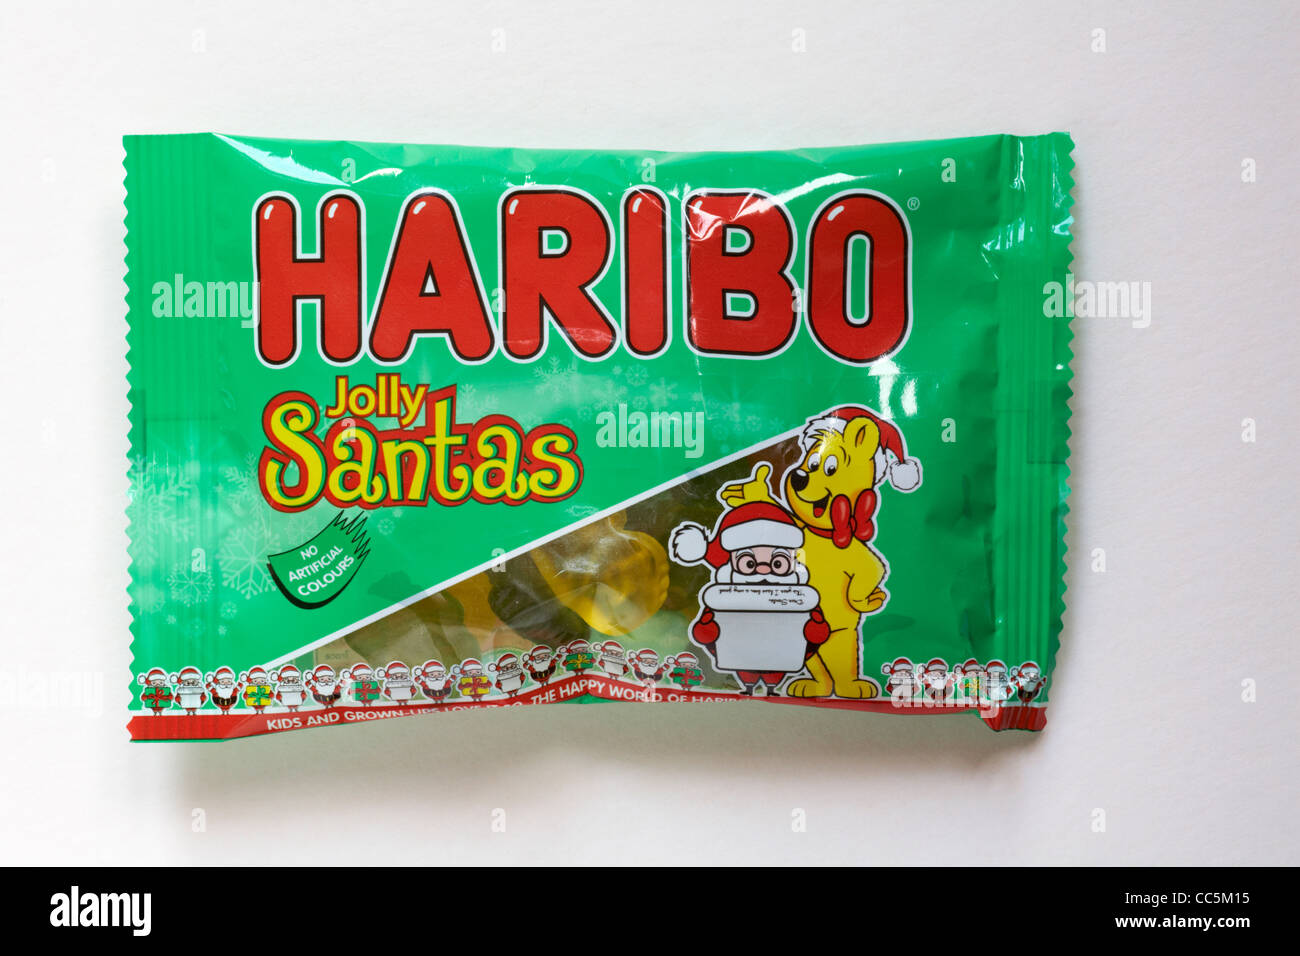 packet of Haribo Jolly Santas sweets isolated on white background - Stock Image